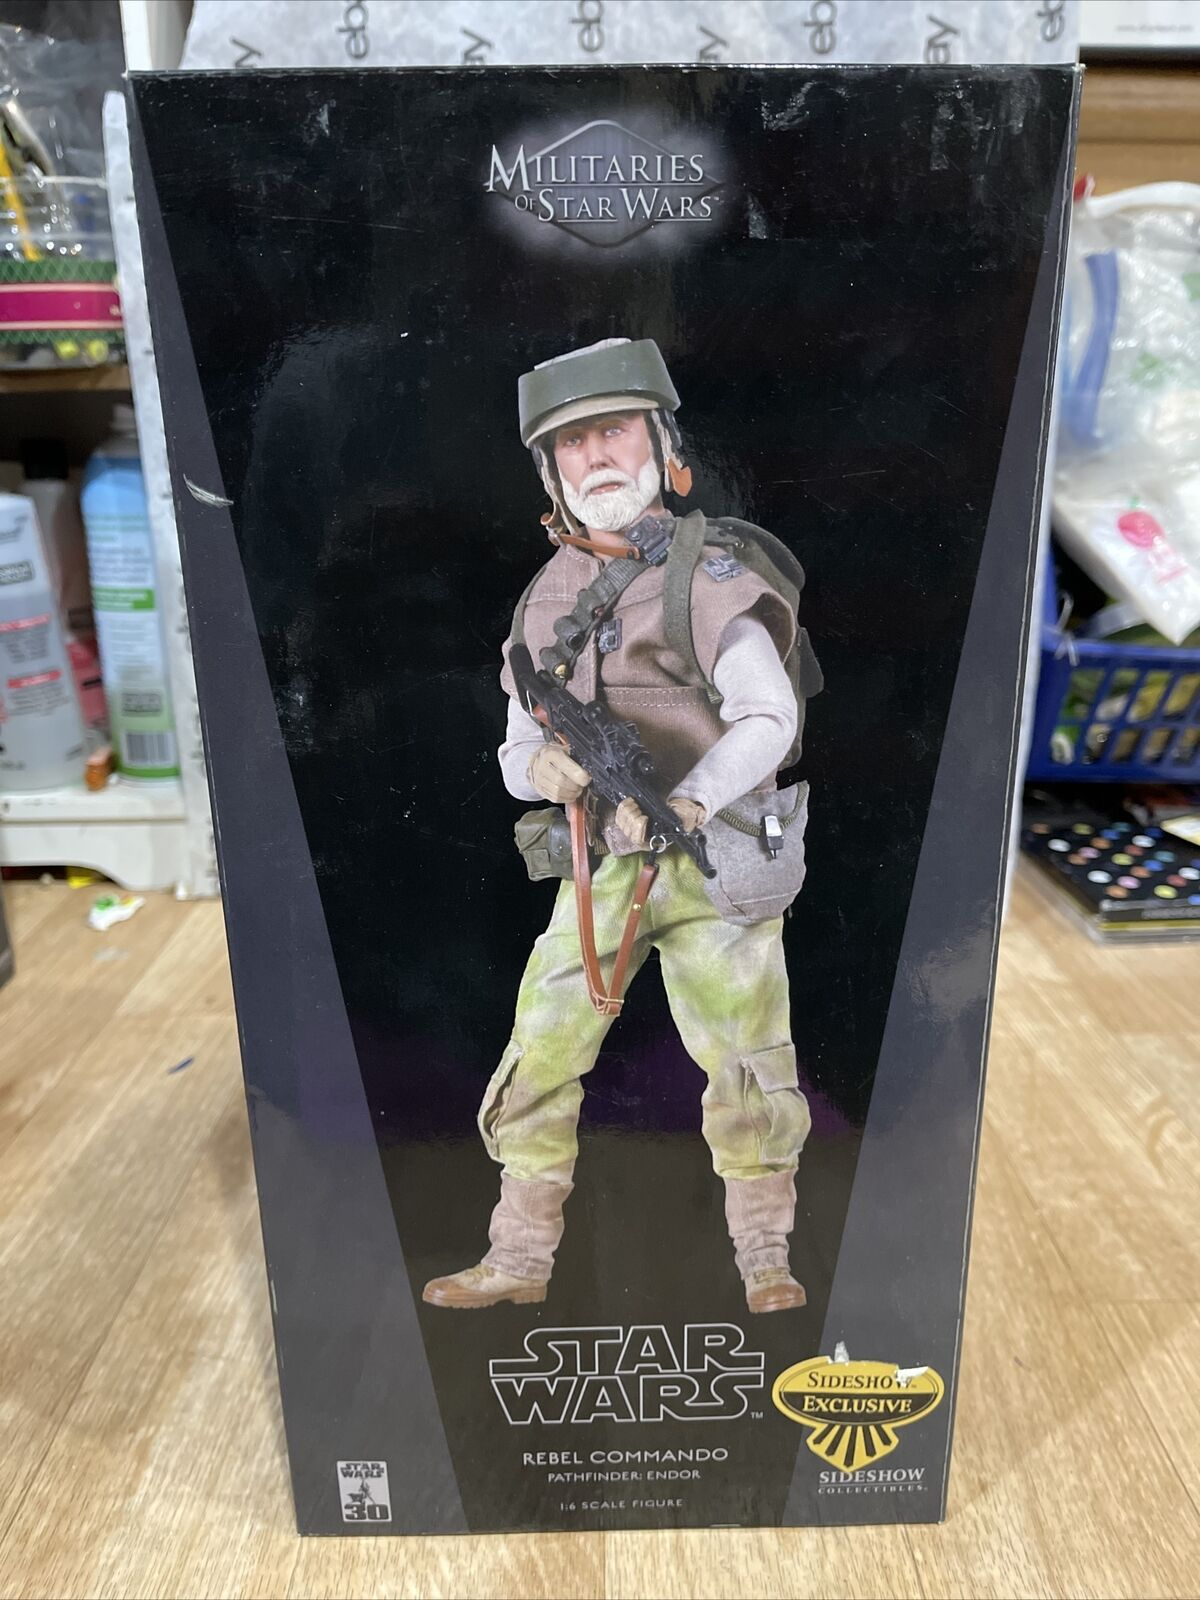 Sideshow Collectibles 1:6 scale Star Wars Militaries Endor Rebel Commando NEW on eBay thumbnail